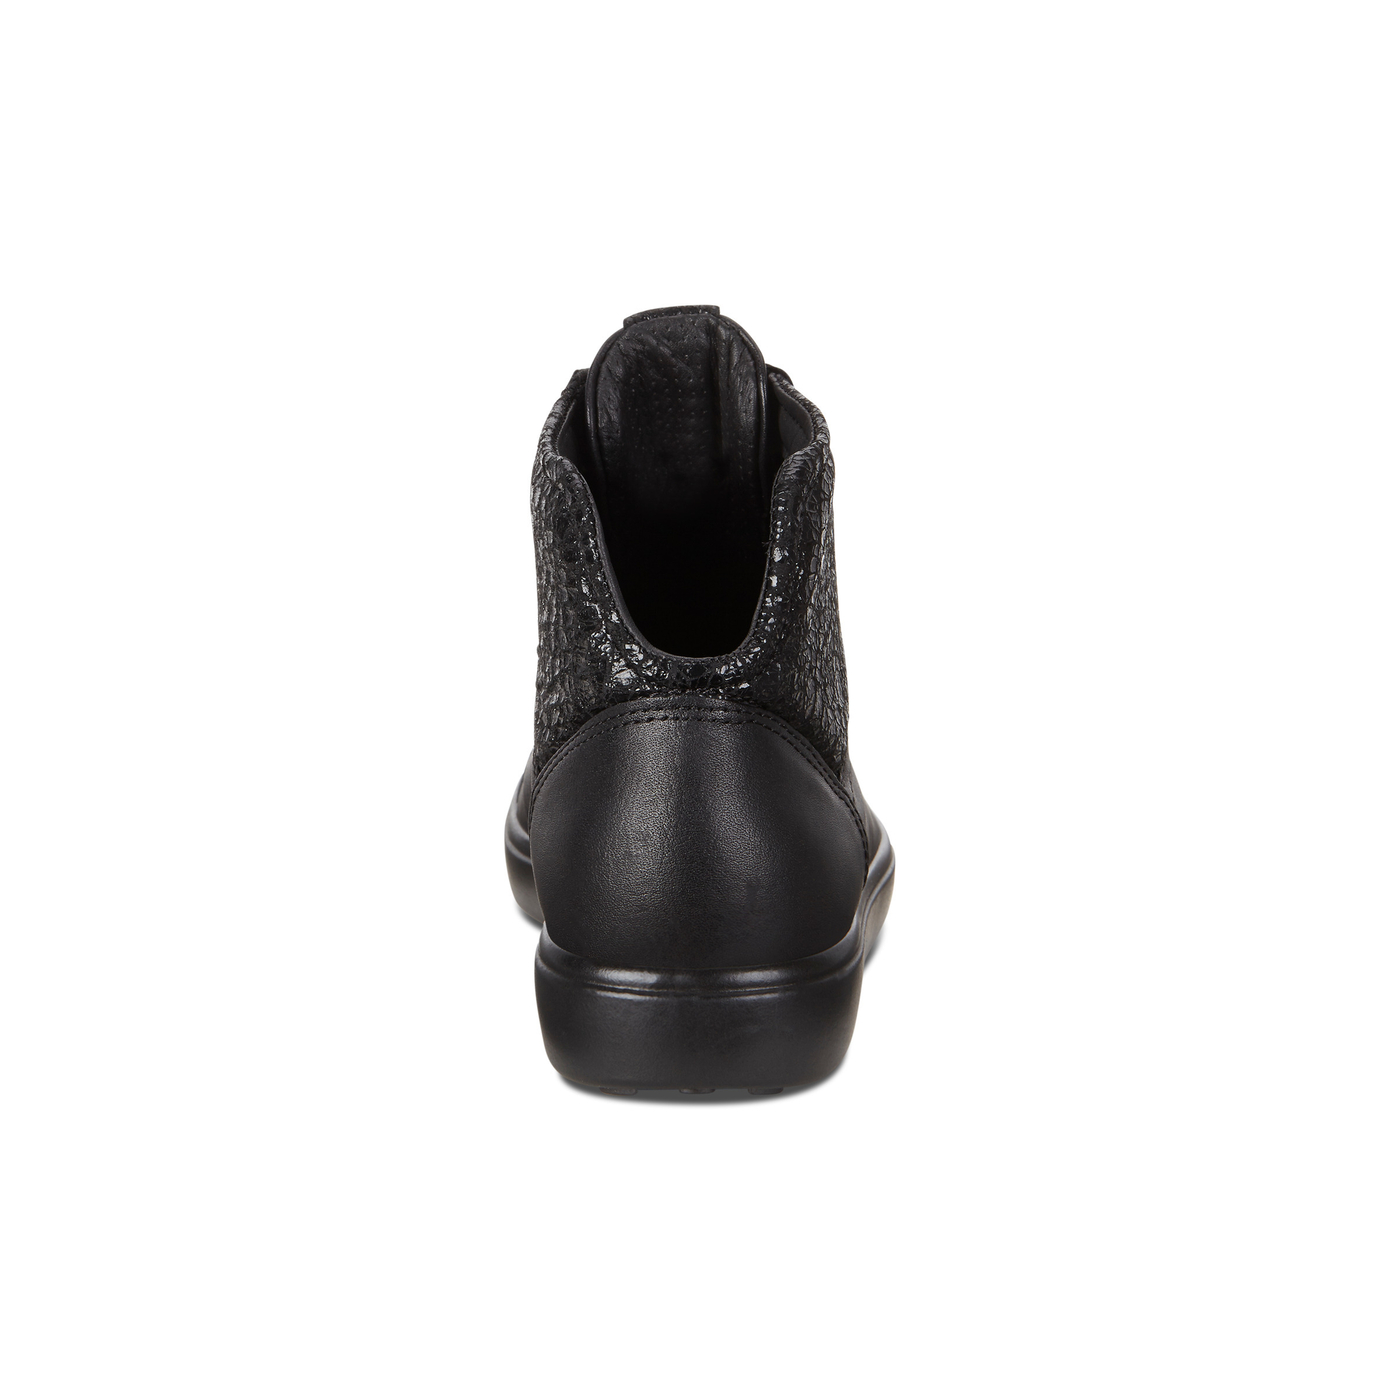 ECCO SOFT7 Womens Combination Leather High Cut Sneaker Lace